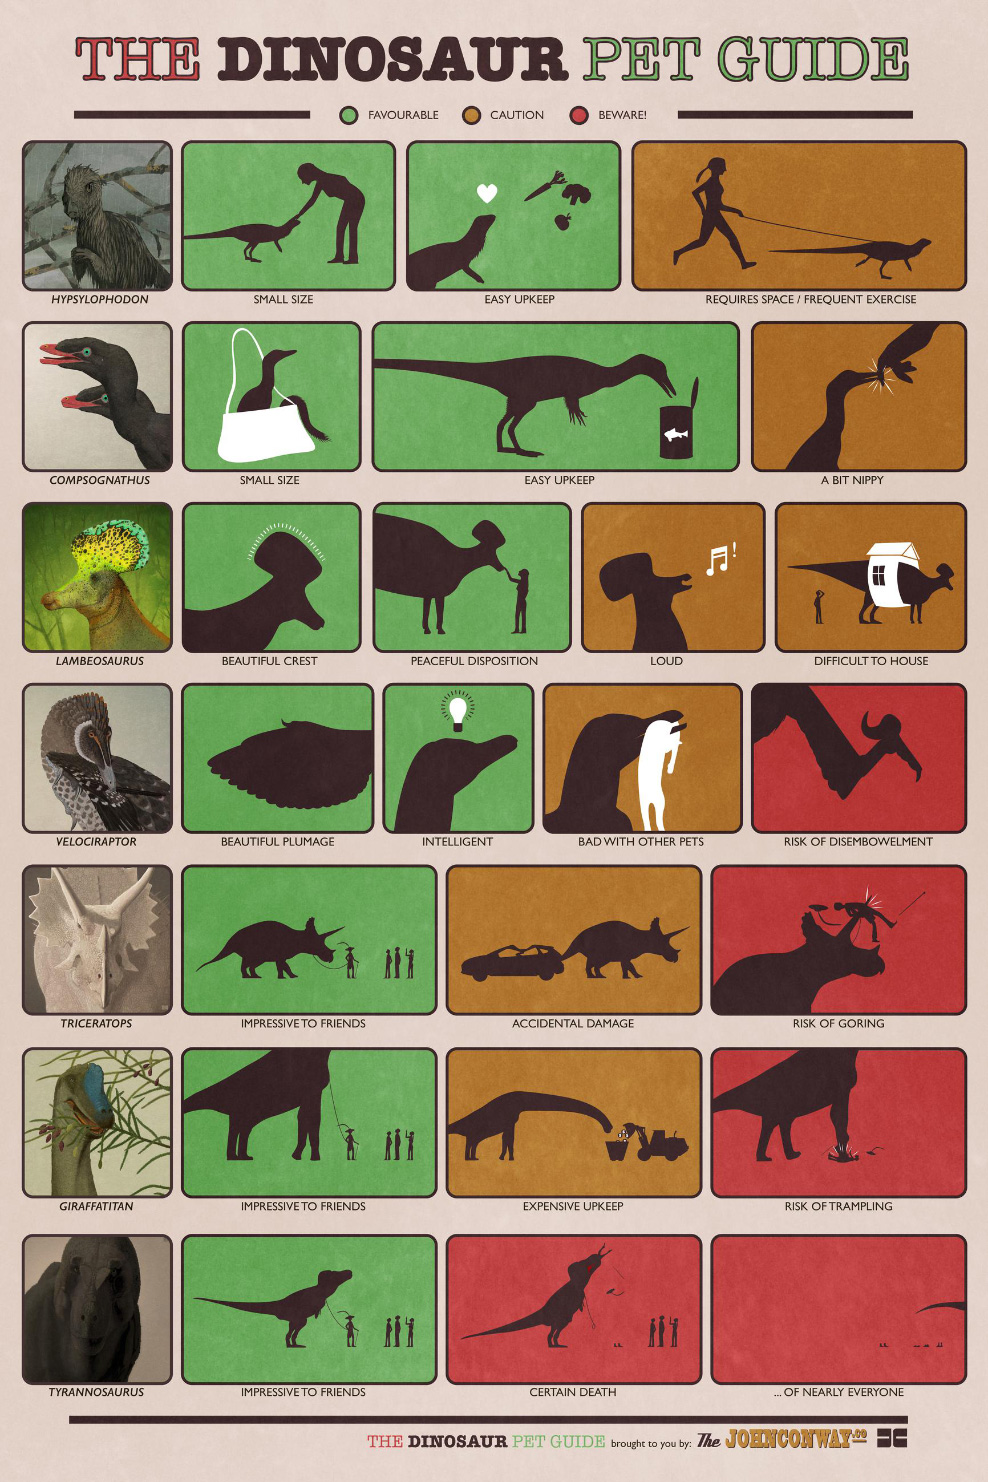 """nevver: The Dinosaur Pet Guide (larger) This is just so awesome to imagine. Seriously. """"Wassup? Oh me? Just out walking my Triceratops."""" I'd carry a shovel and a leaf bag for the poop. And I'd walk through the hood like a G. Pitbull, what?And if it's a boy, I'd name him Adam. A girl, Eve. Man…I'm really procrastinating right now. Sheesh."""